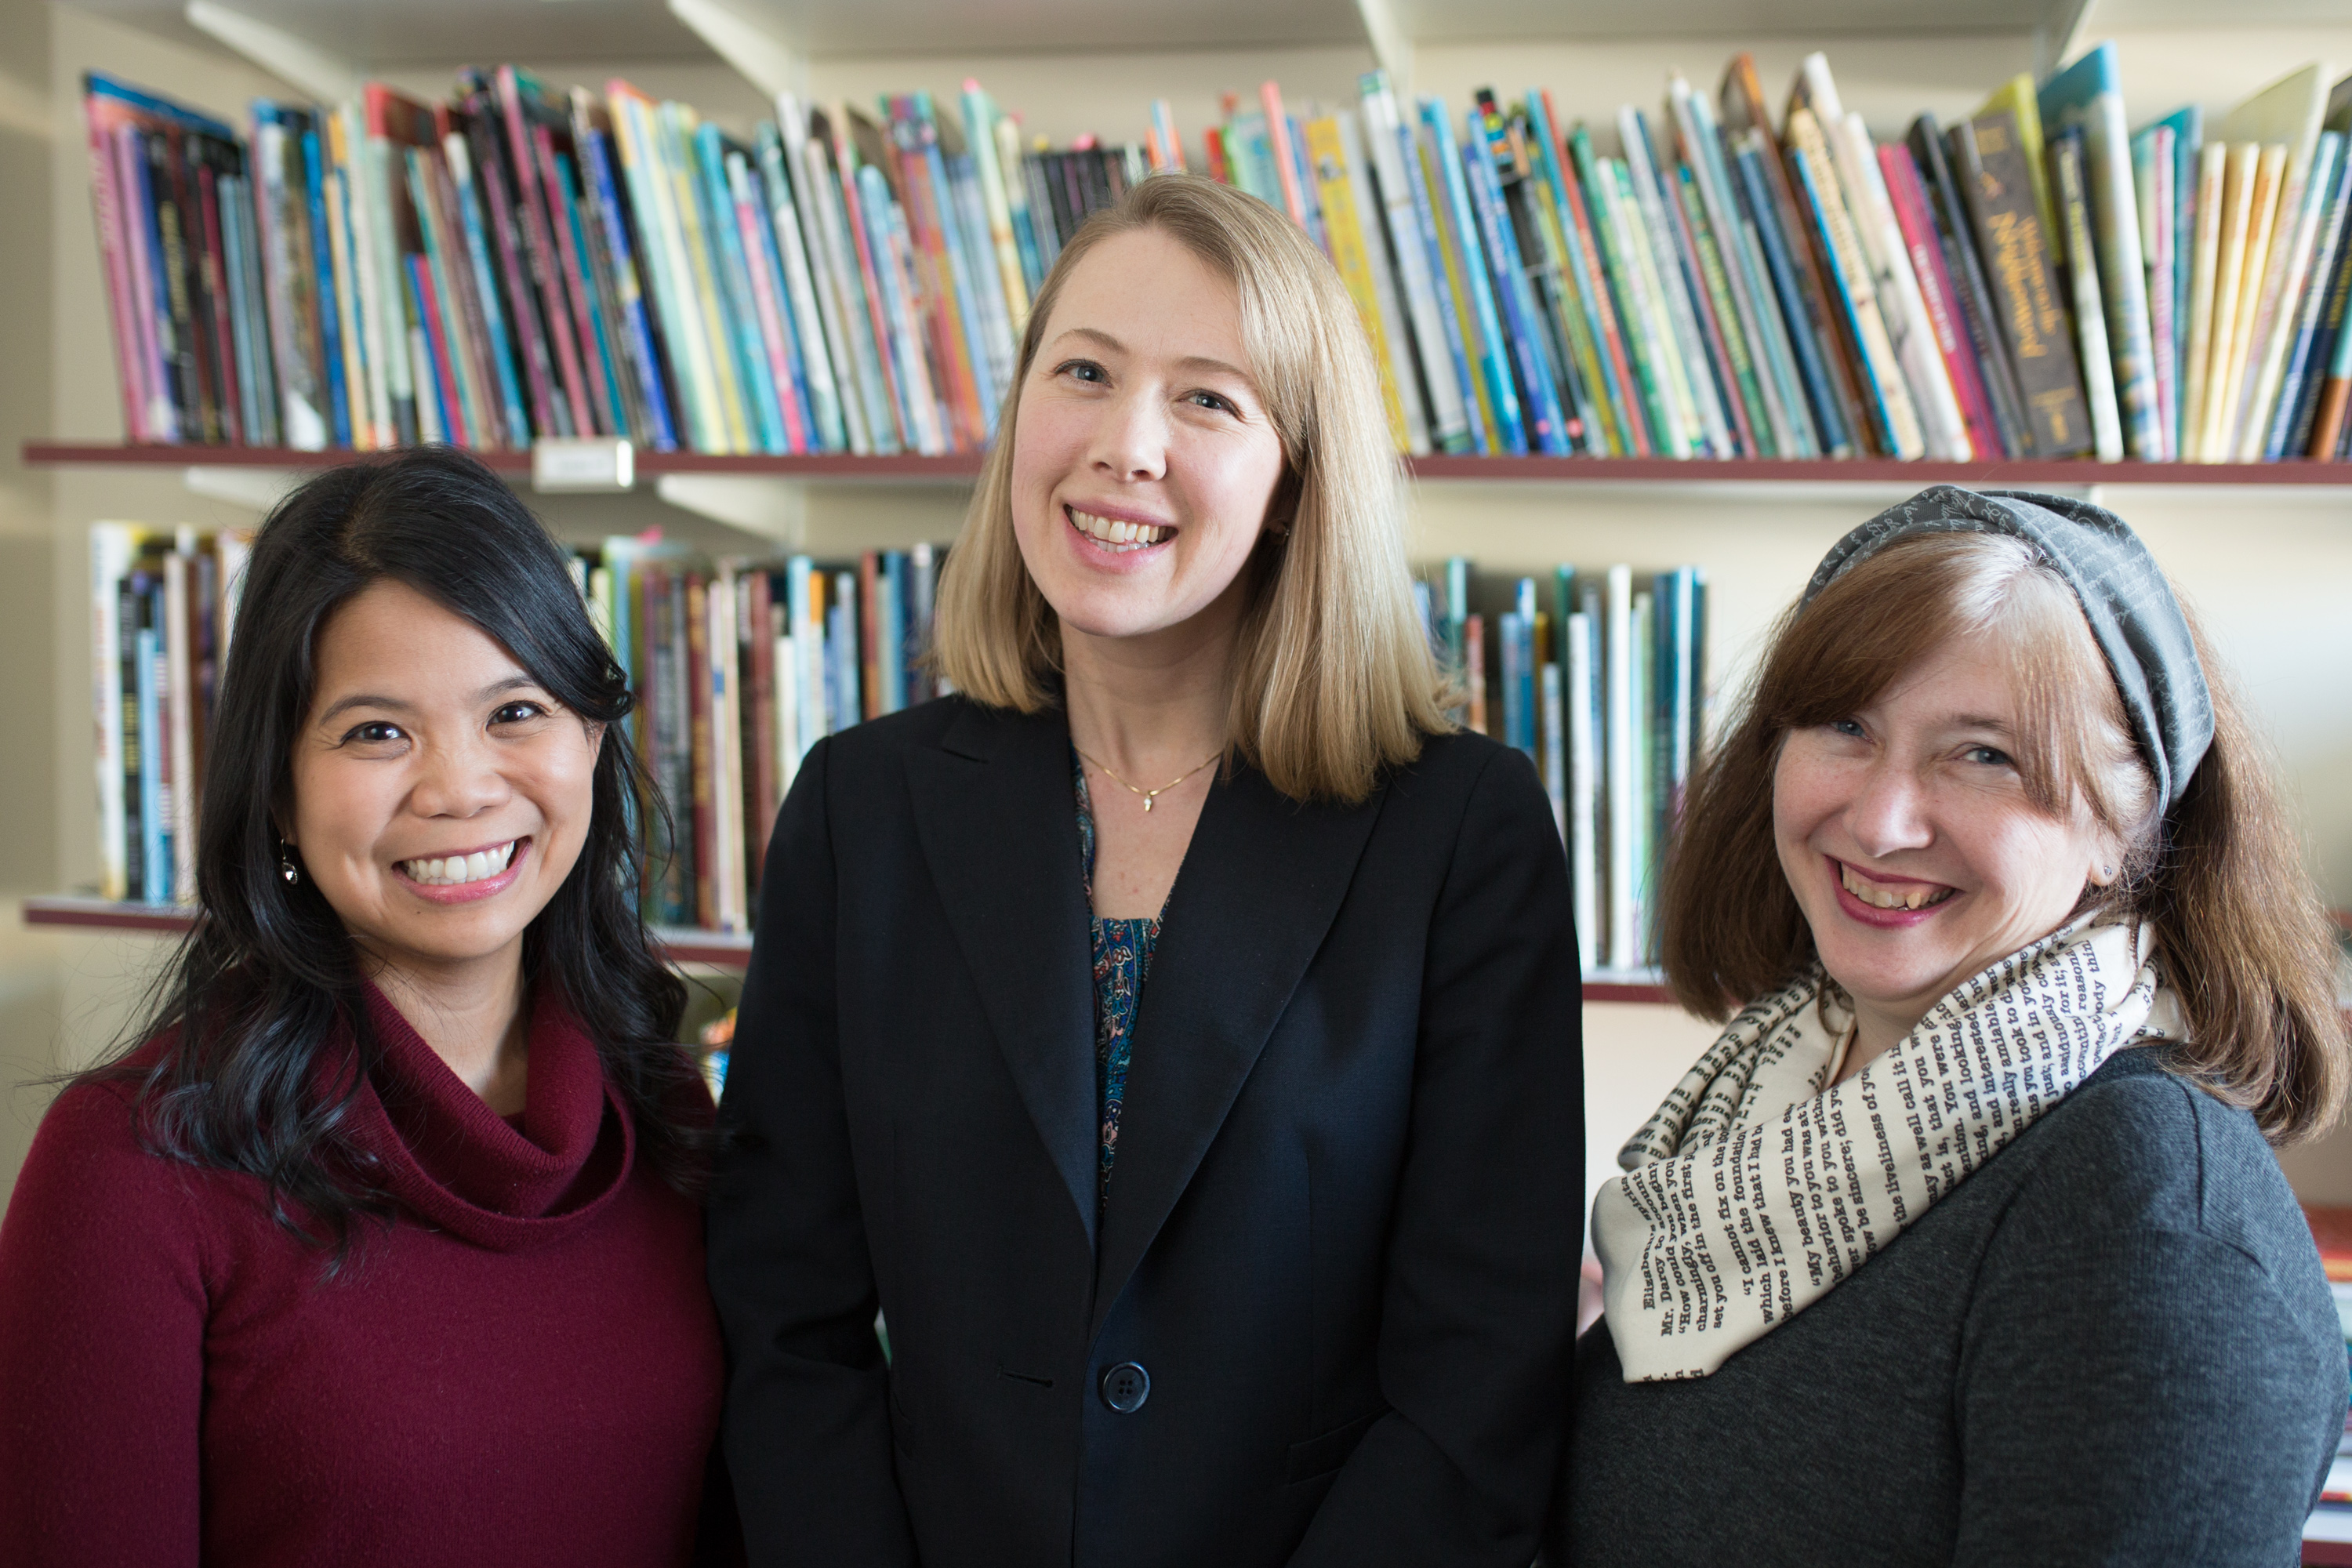 Classroom Bookshelf authors Grace Enriquez, Erika Thulin Dawes, and Mary Ann Cappiello, in front of bookshelf